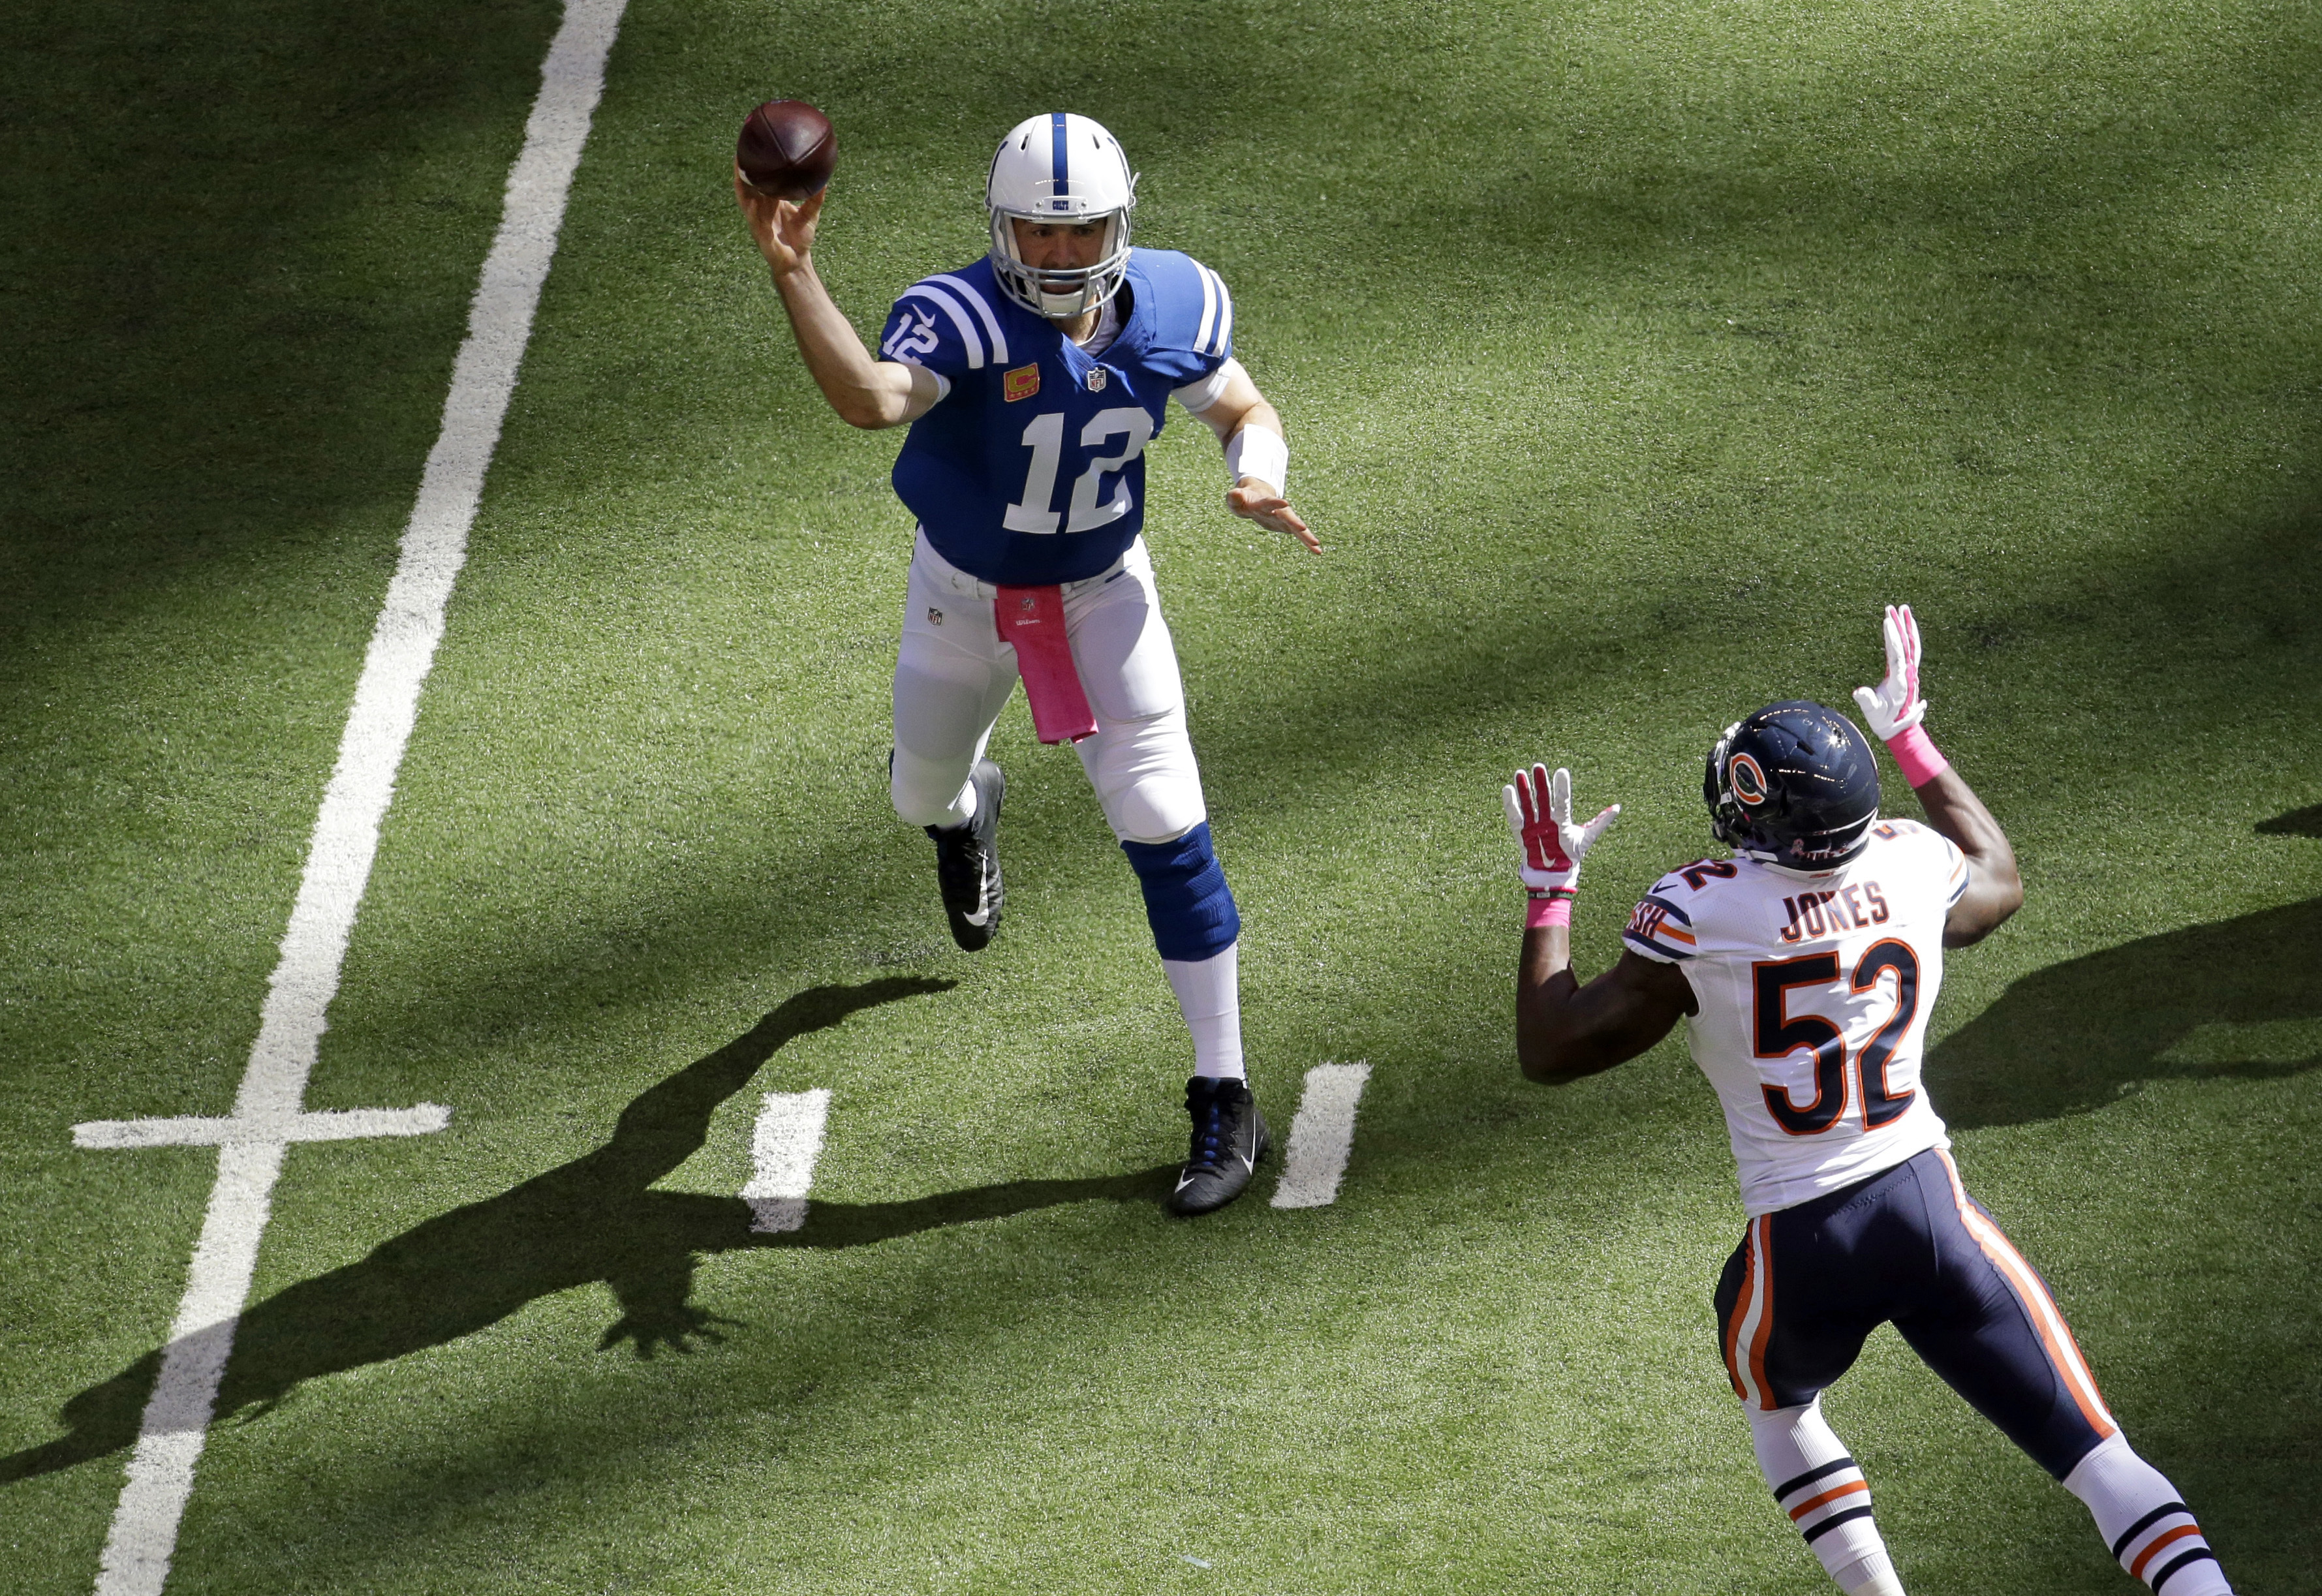 Indianapolis Colts quarterback Andrew Luck (12) throws over Chicago Bears inside linebacker Christian Jones (52) during the first half of an NFL football game in Indianapolis, Sunday, Oct. 9, 2016. (AP Photo/AJ Mast)